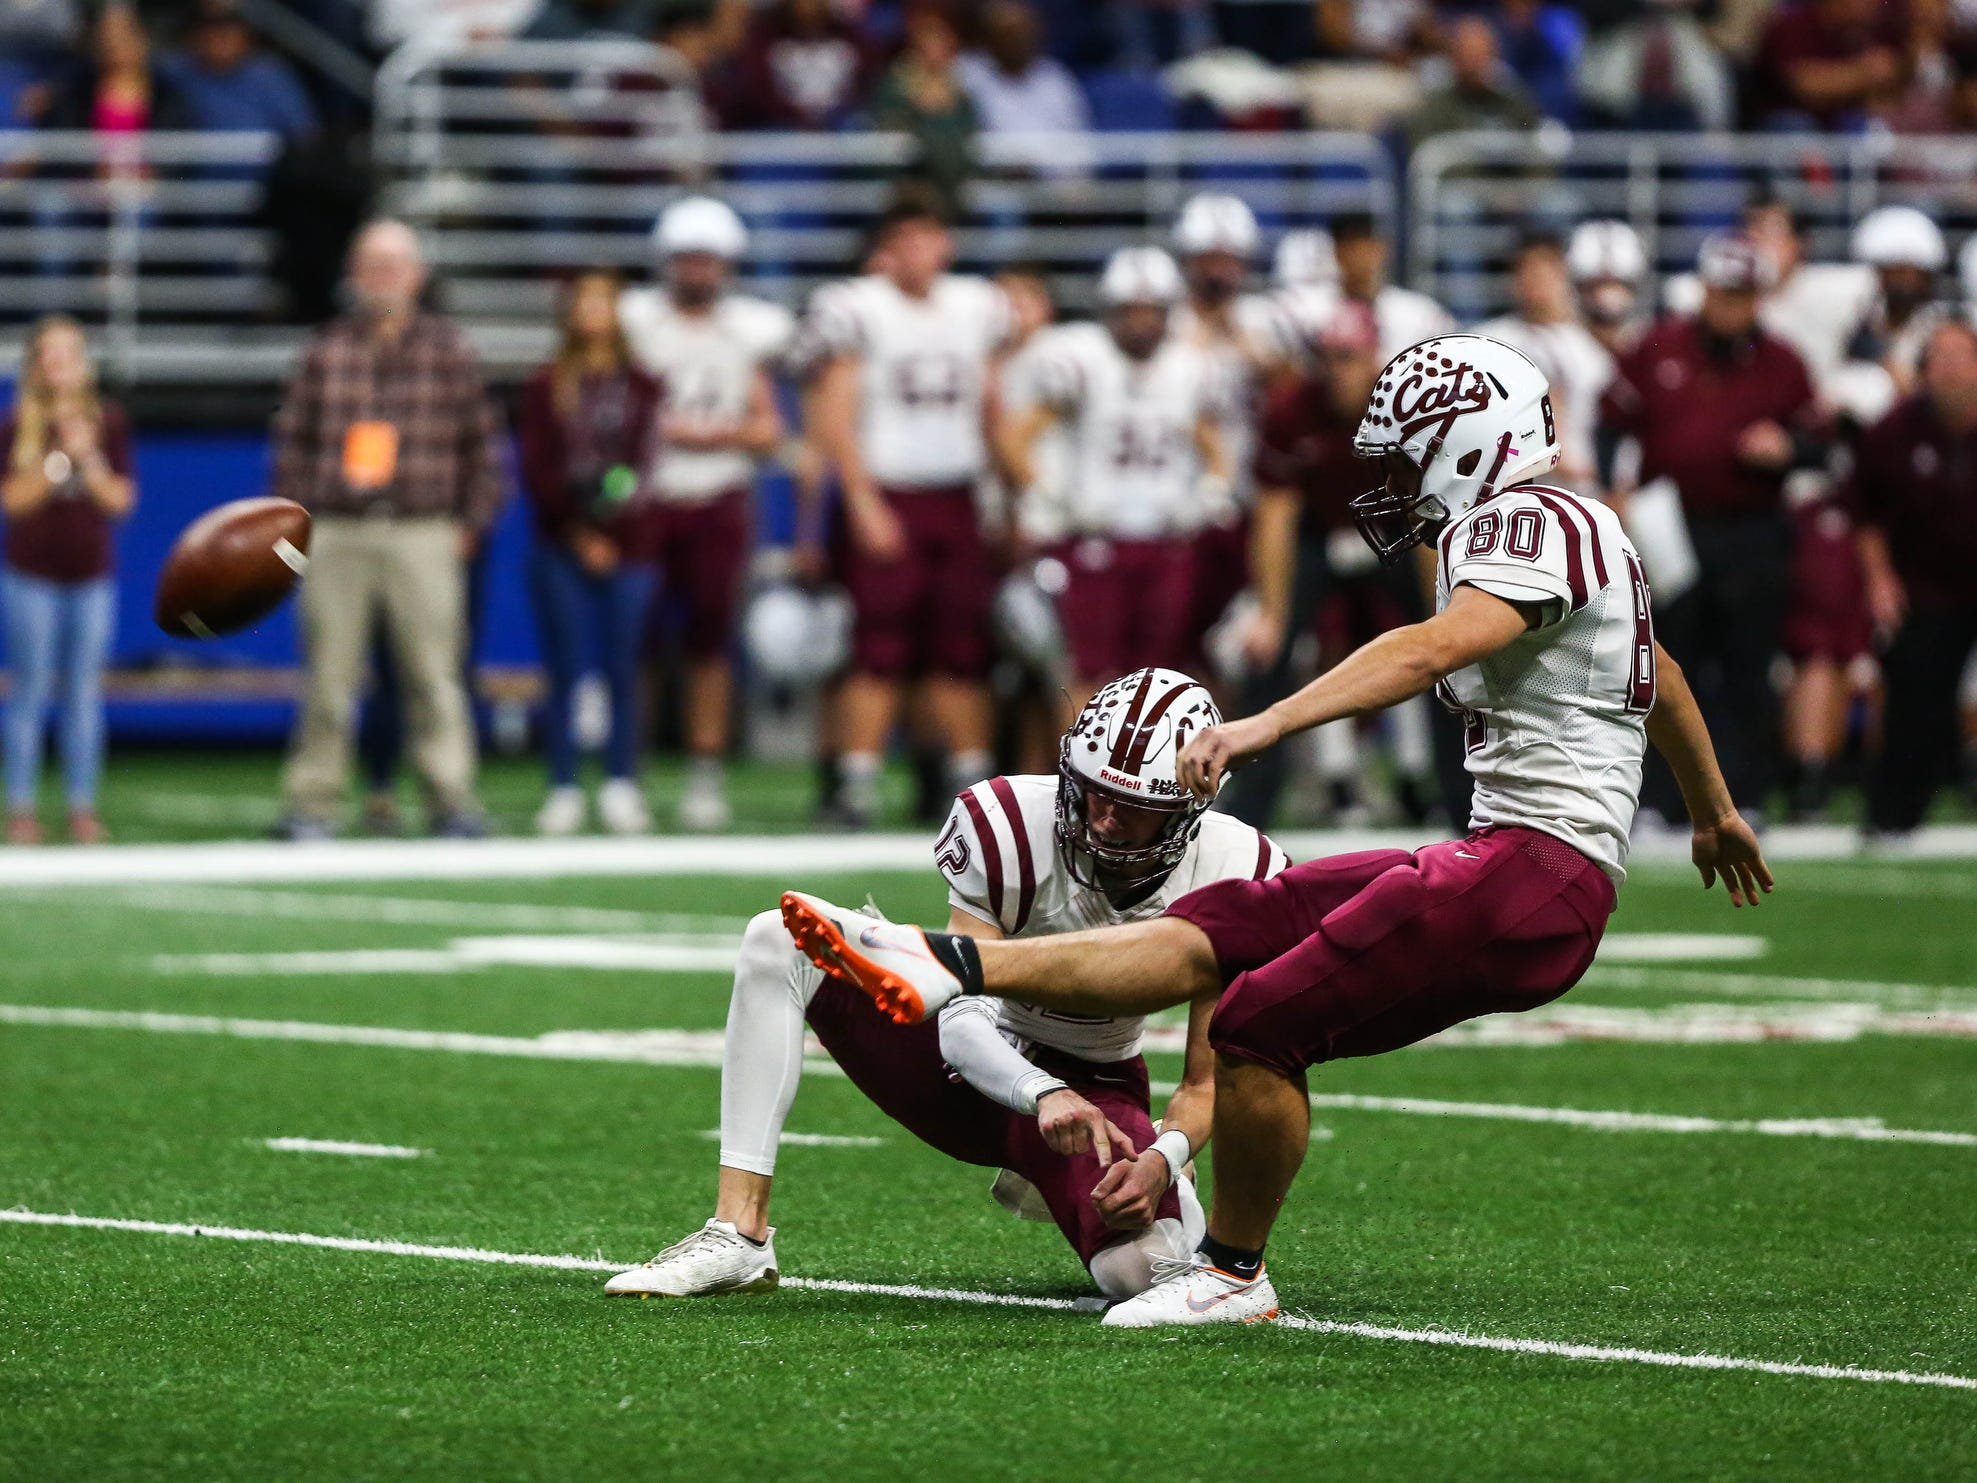 Calallen's Joao Trindade goes for a field goal during Friday's game at the Alamodome.